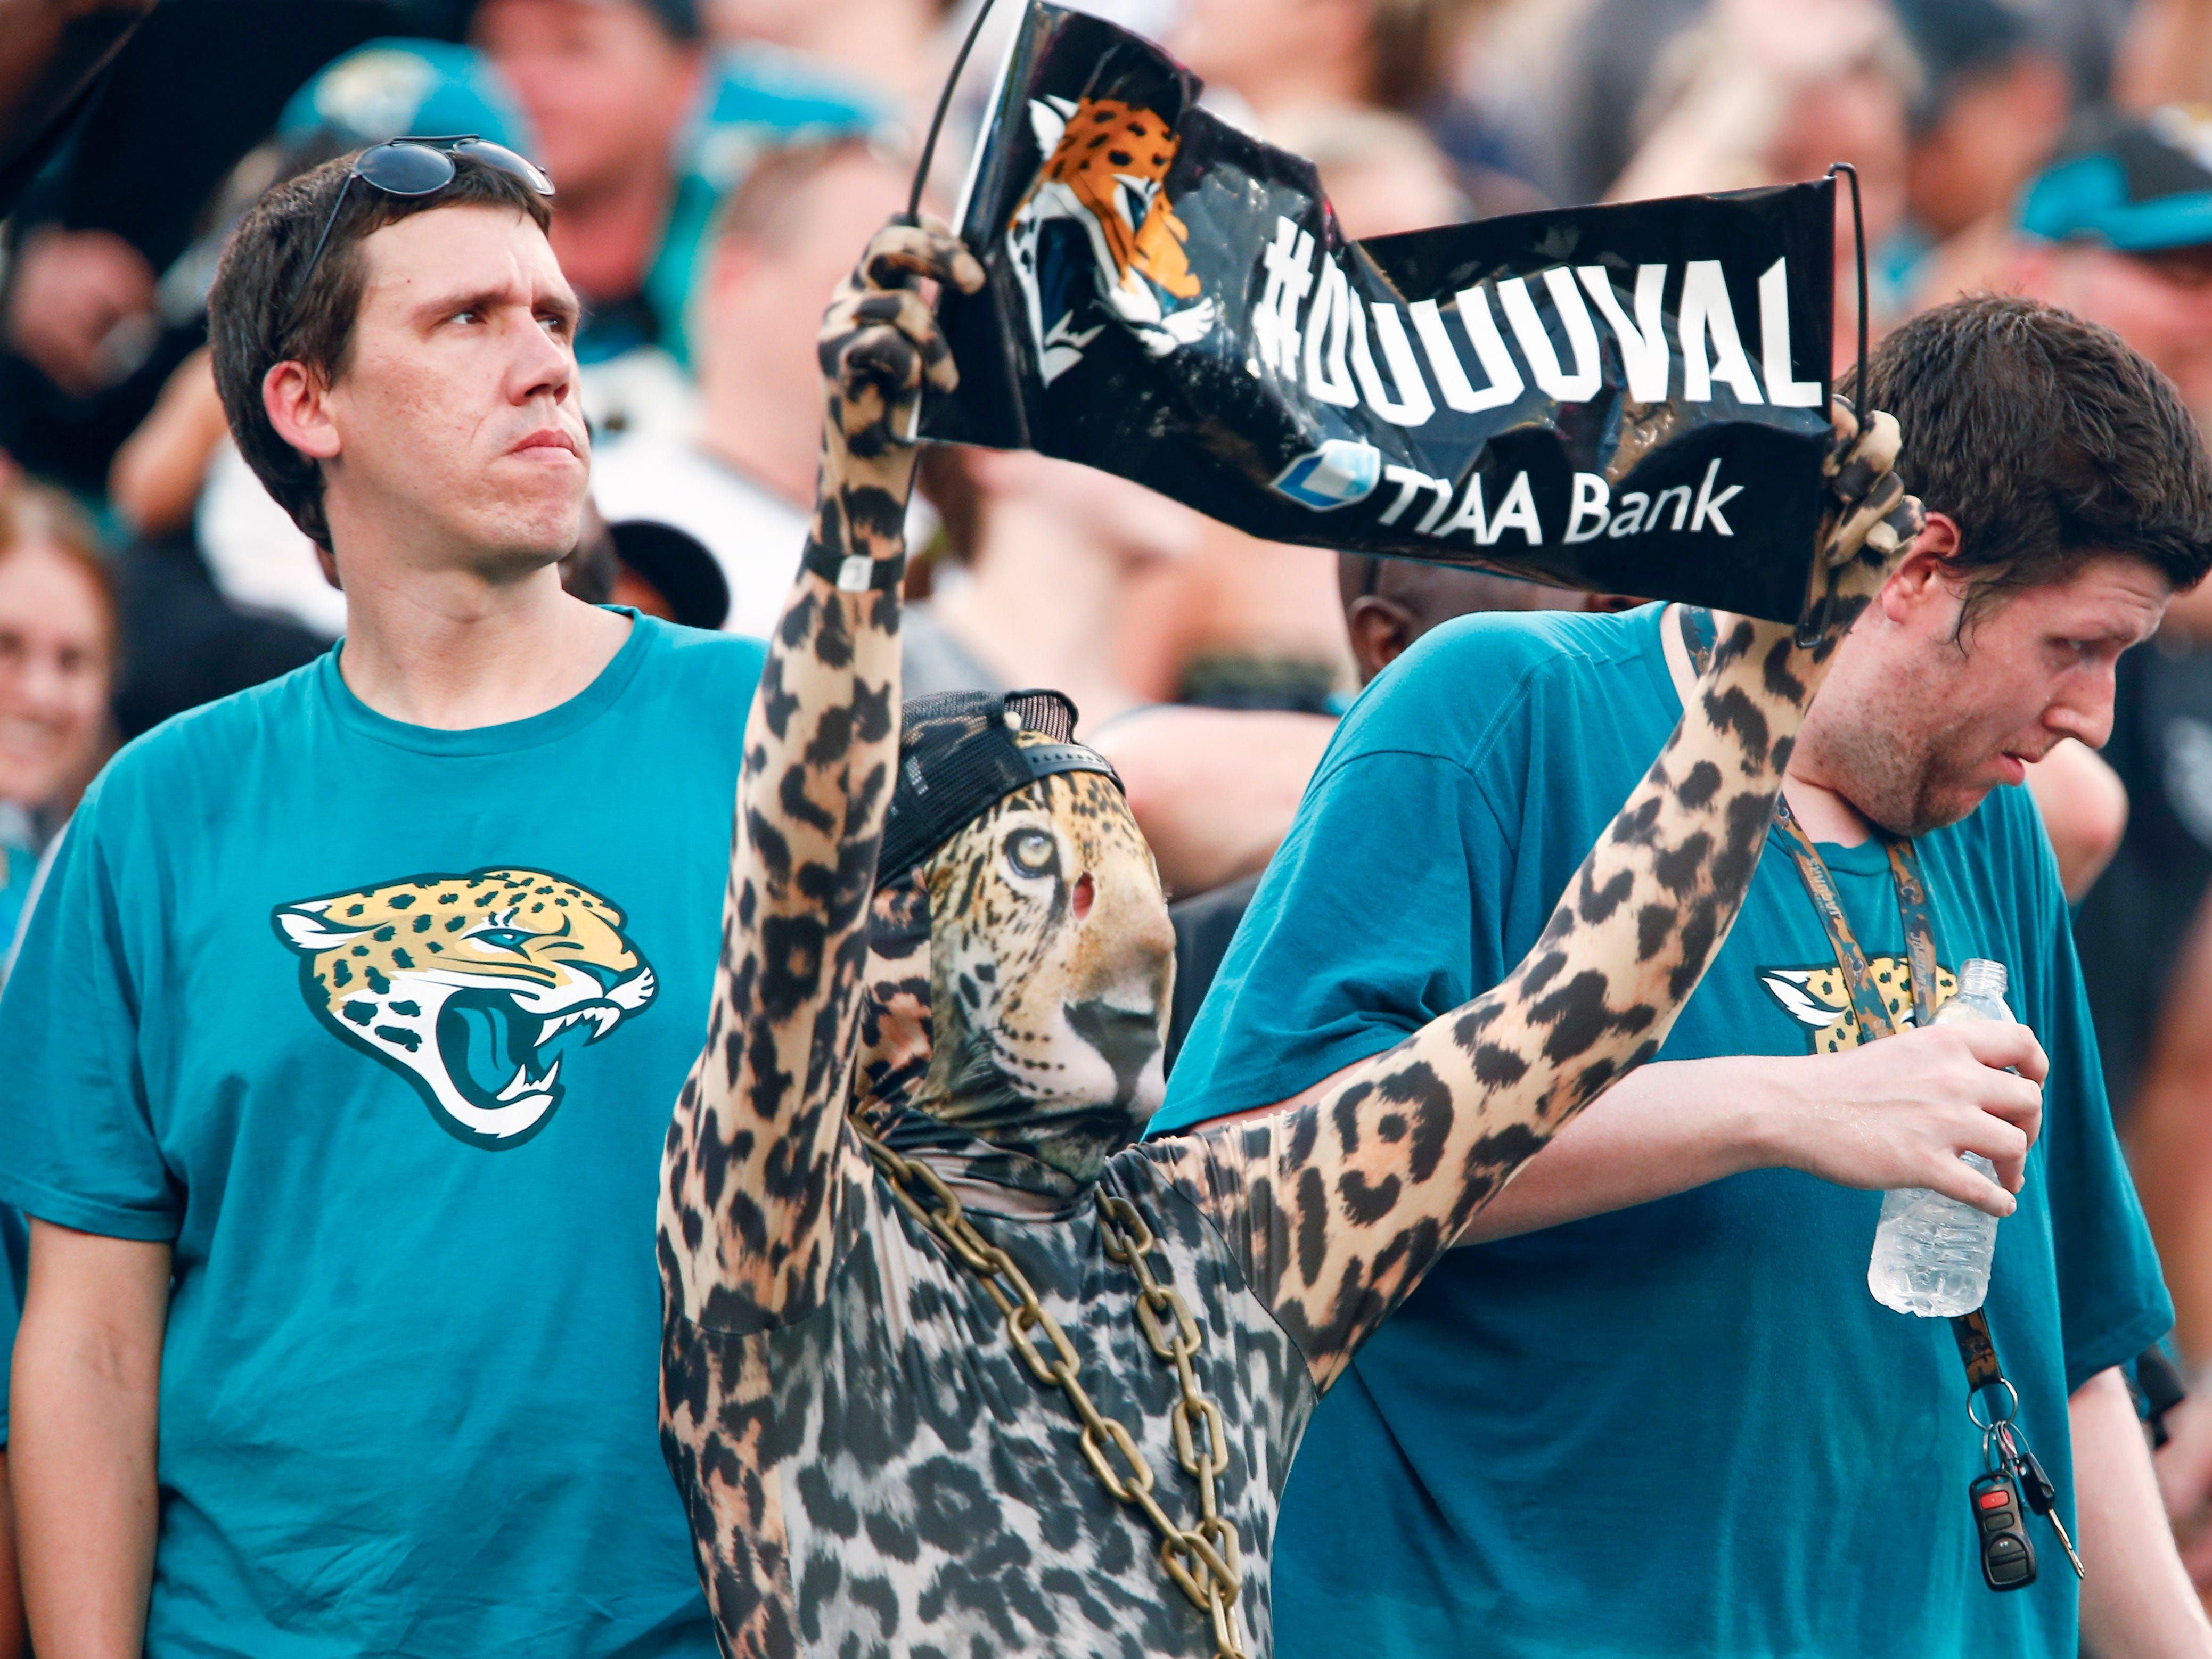 Sep 16, 2018; Jacksonville, FL, USA; A Jacksonville Jaguars fan dressed as a jaguar cheers during the second half against the New England Patriots at TIAA Bank Field. Mandatory Credit: Reinhold Matay-USA TODAY Sports